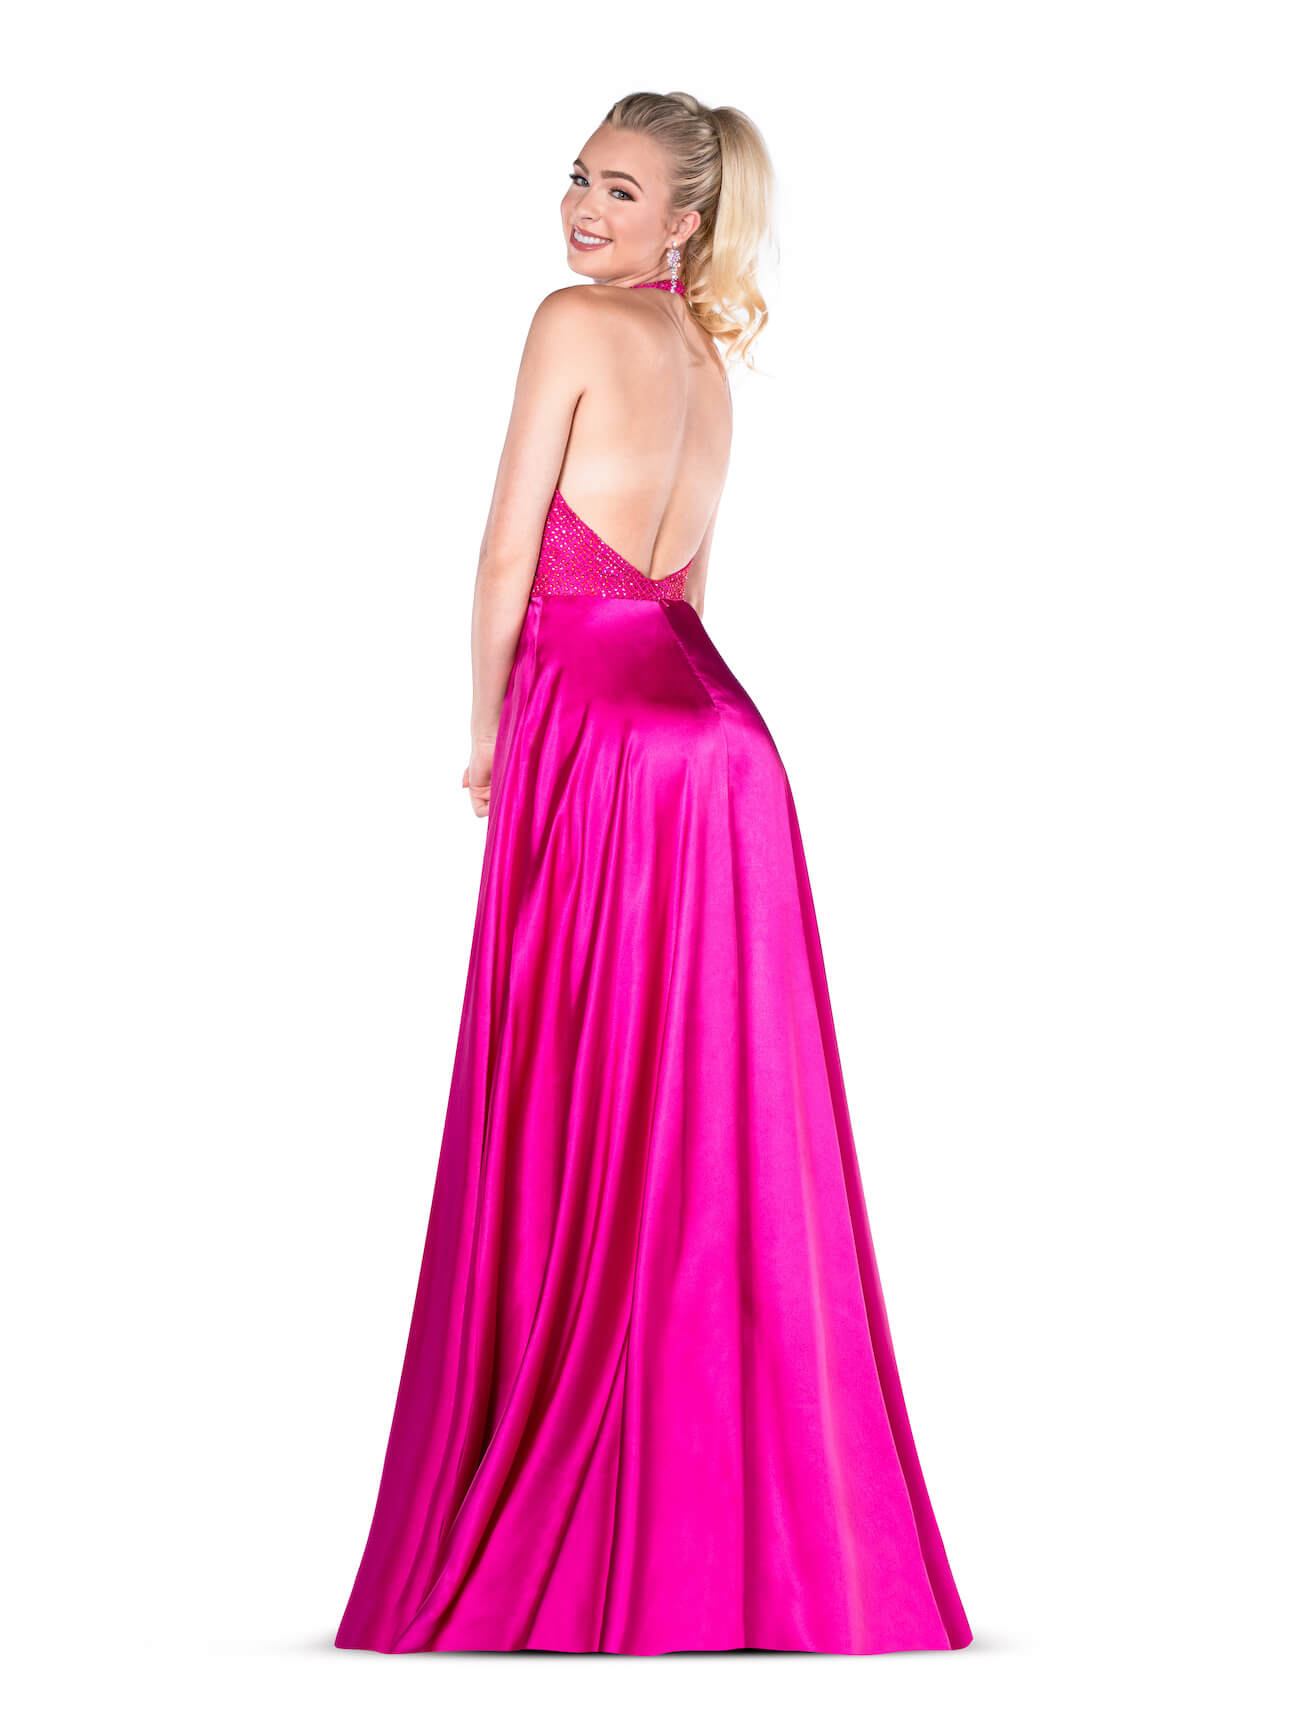 Vienna Purple Size 0 A-line Backless Side slit Dress on Queenly